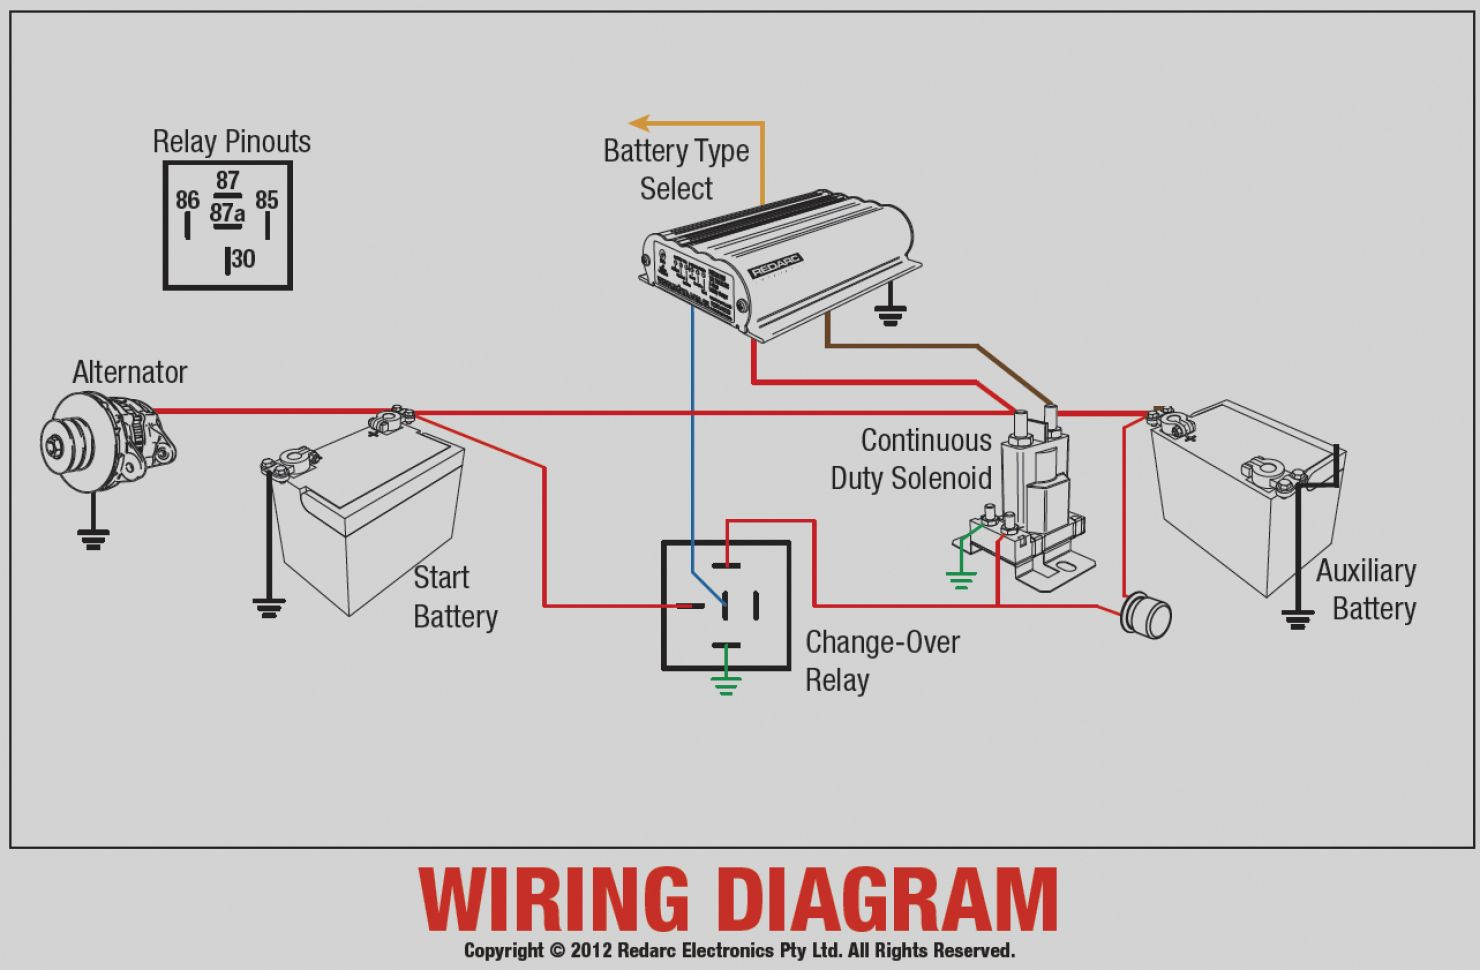 latest red arc dual battery system wiring diagram redarc bcdc1225lv rh pinterest com rotronics dual battery system wiring diagram projecta dual battery system wiring diagram